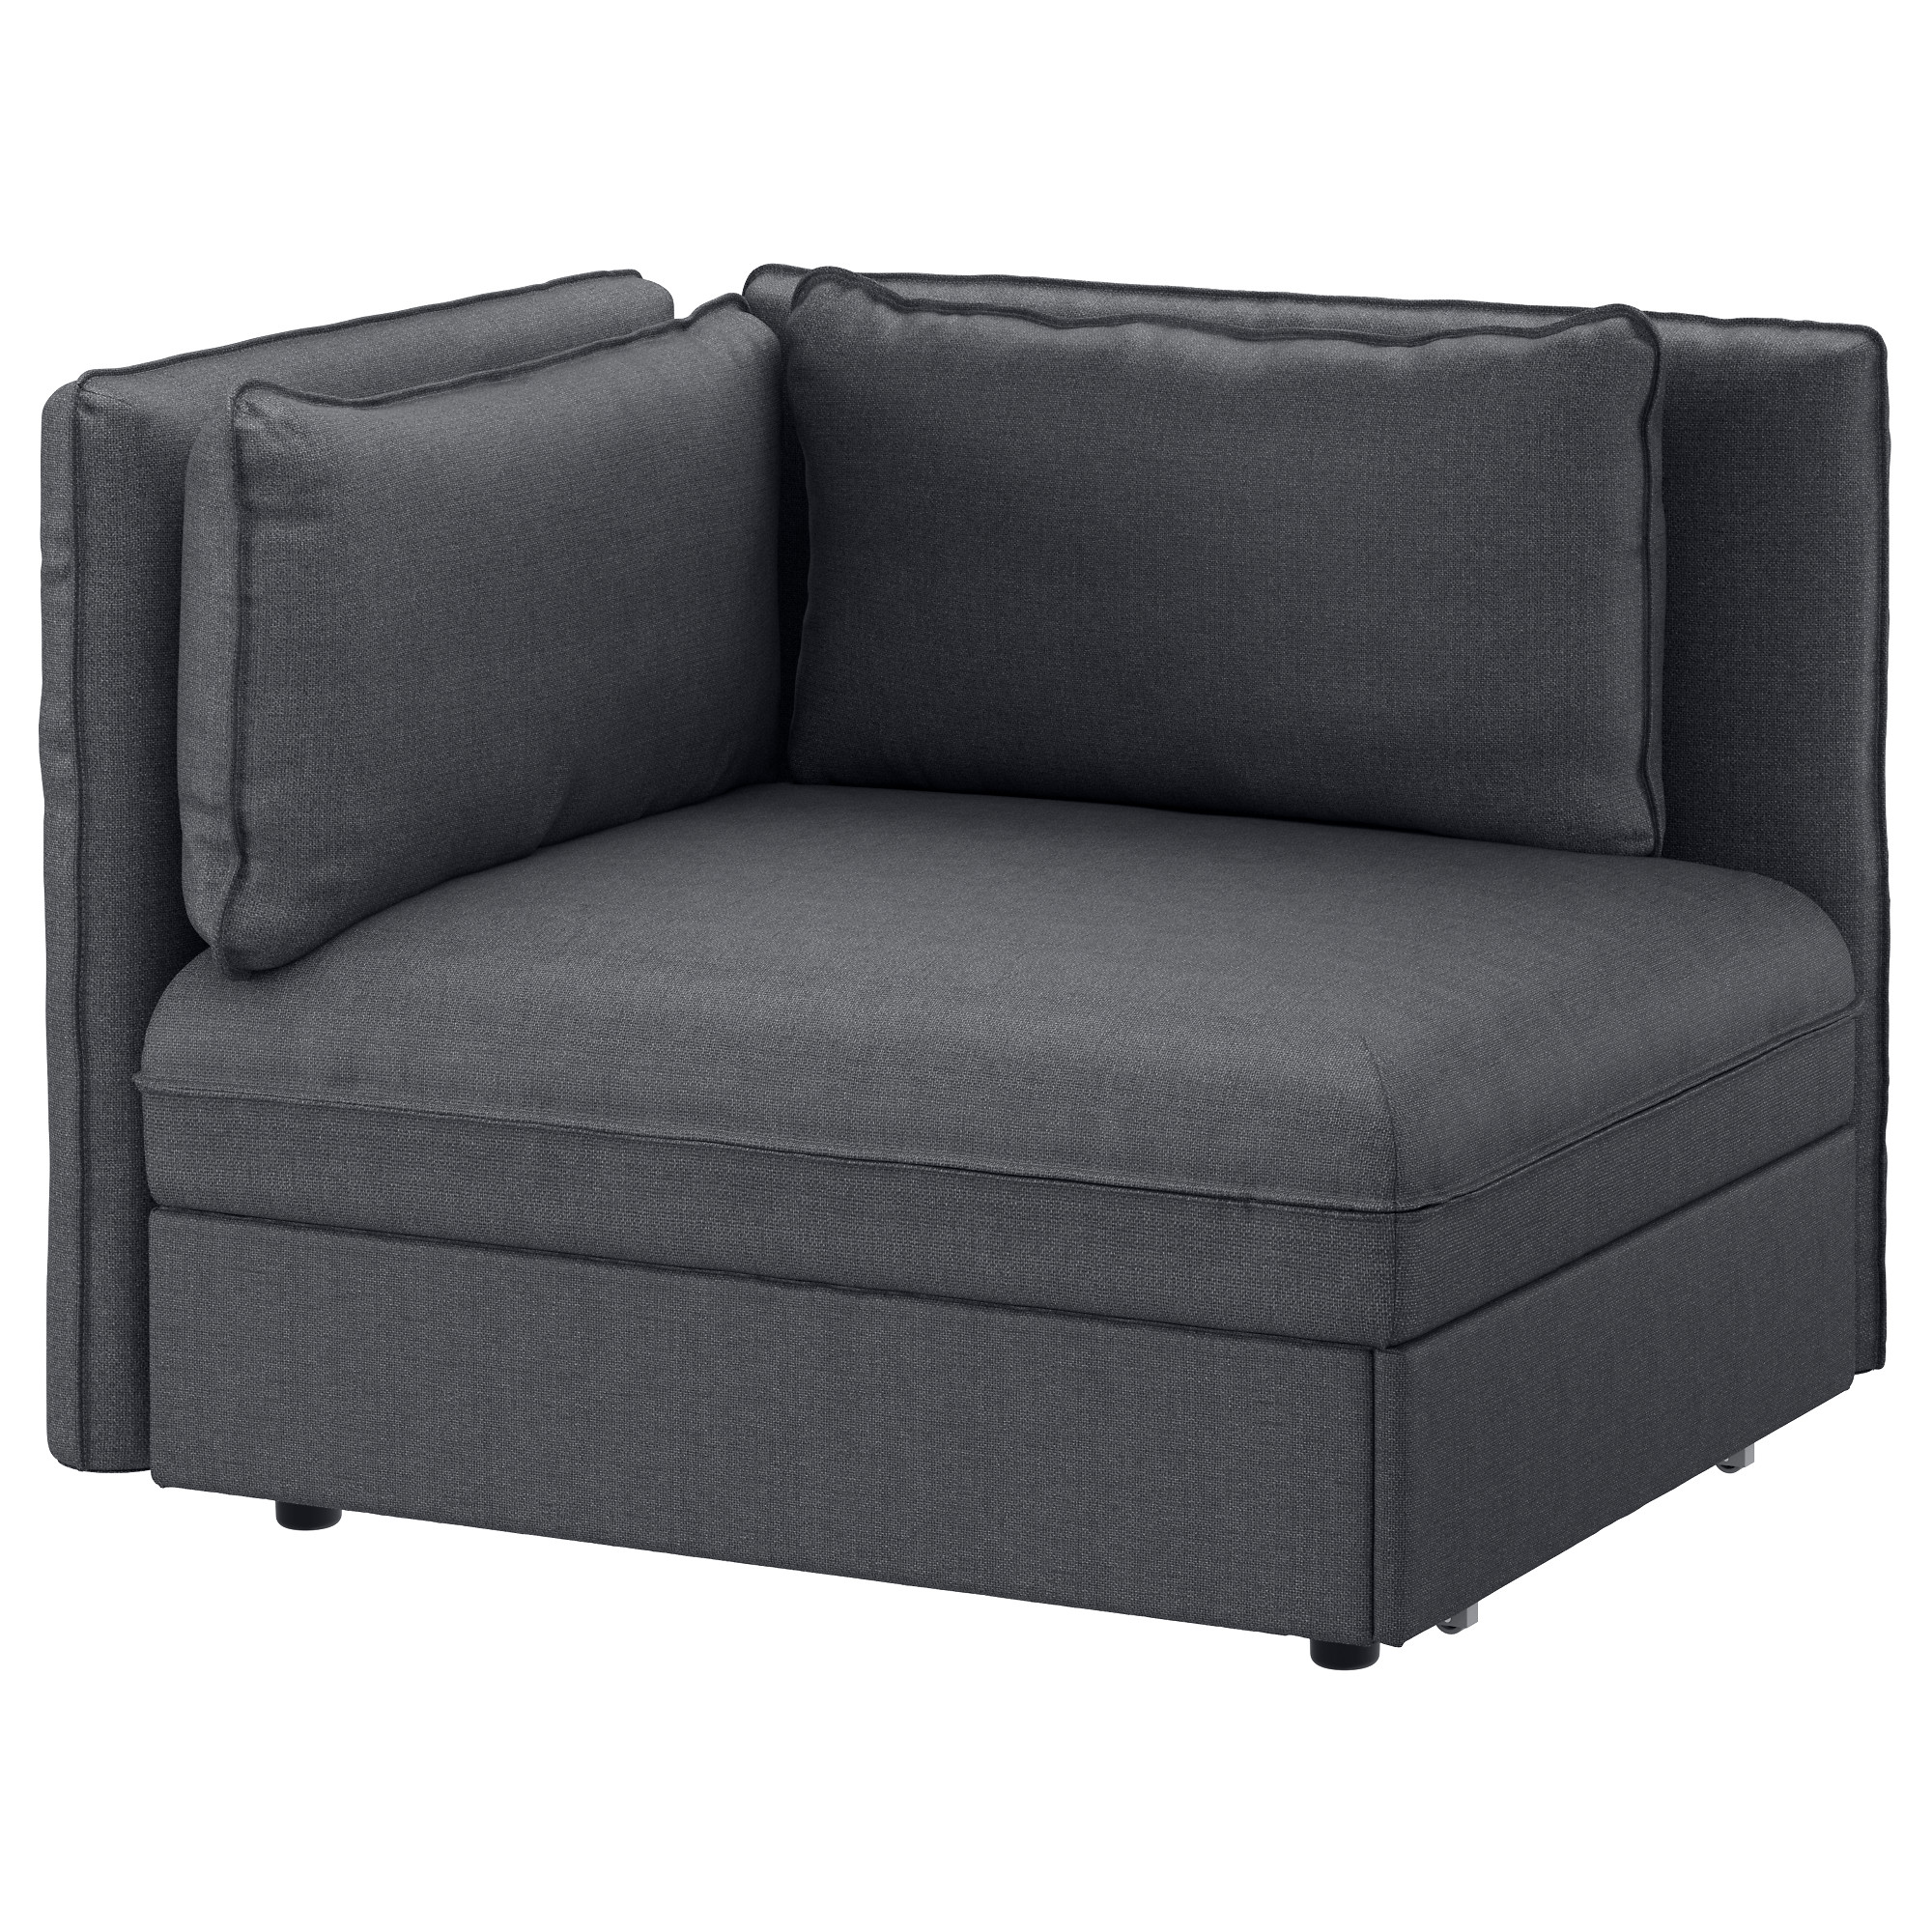 Sofa Bed sleeper-sofas & chair beds - ikea